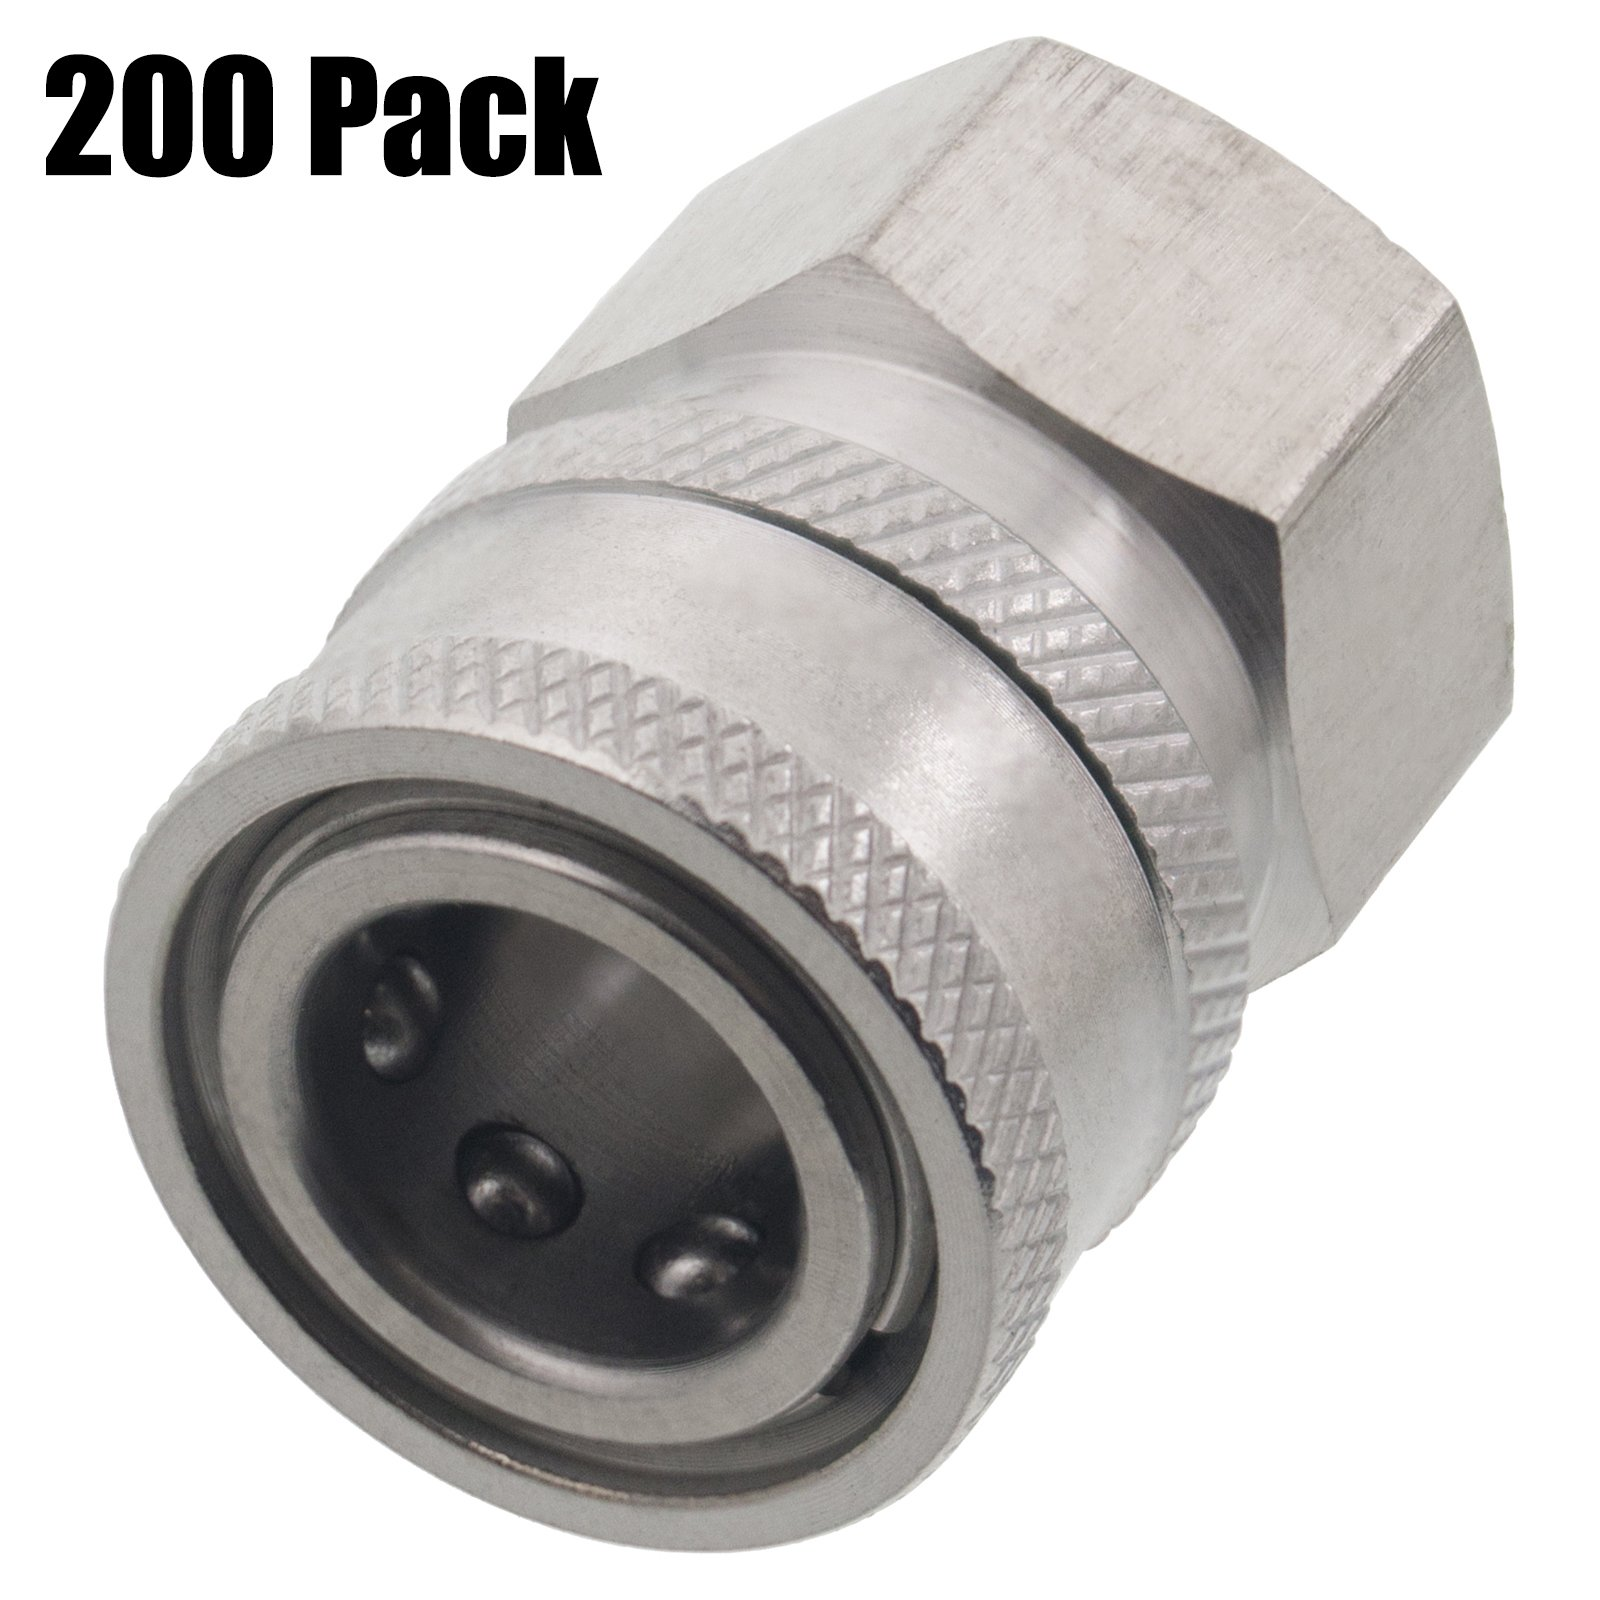 Erie Tools 200 3/8in. FPT Female Stainless Steel Socket Quick Connect Coupler 5000 PSI 10 GPM for Pressure Washer Nozzle Gun Hose Wand